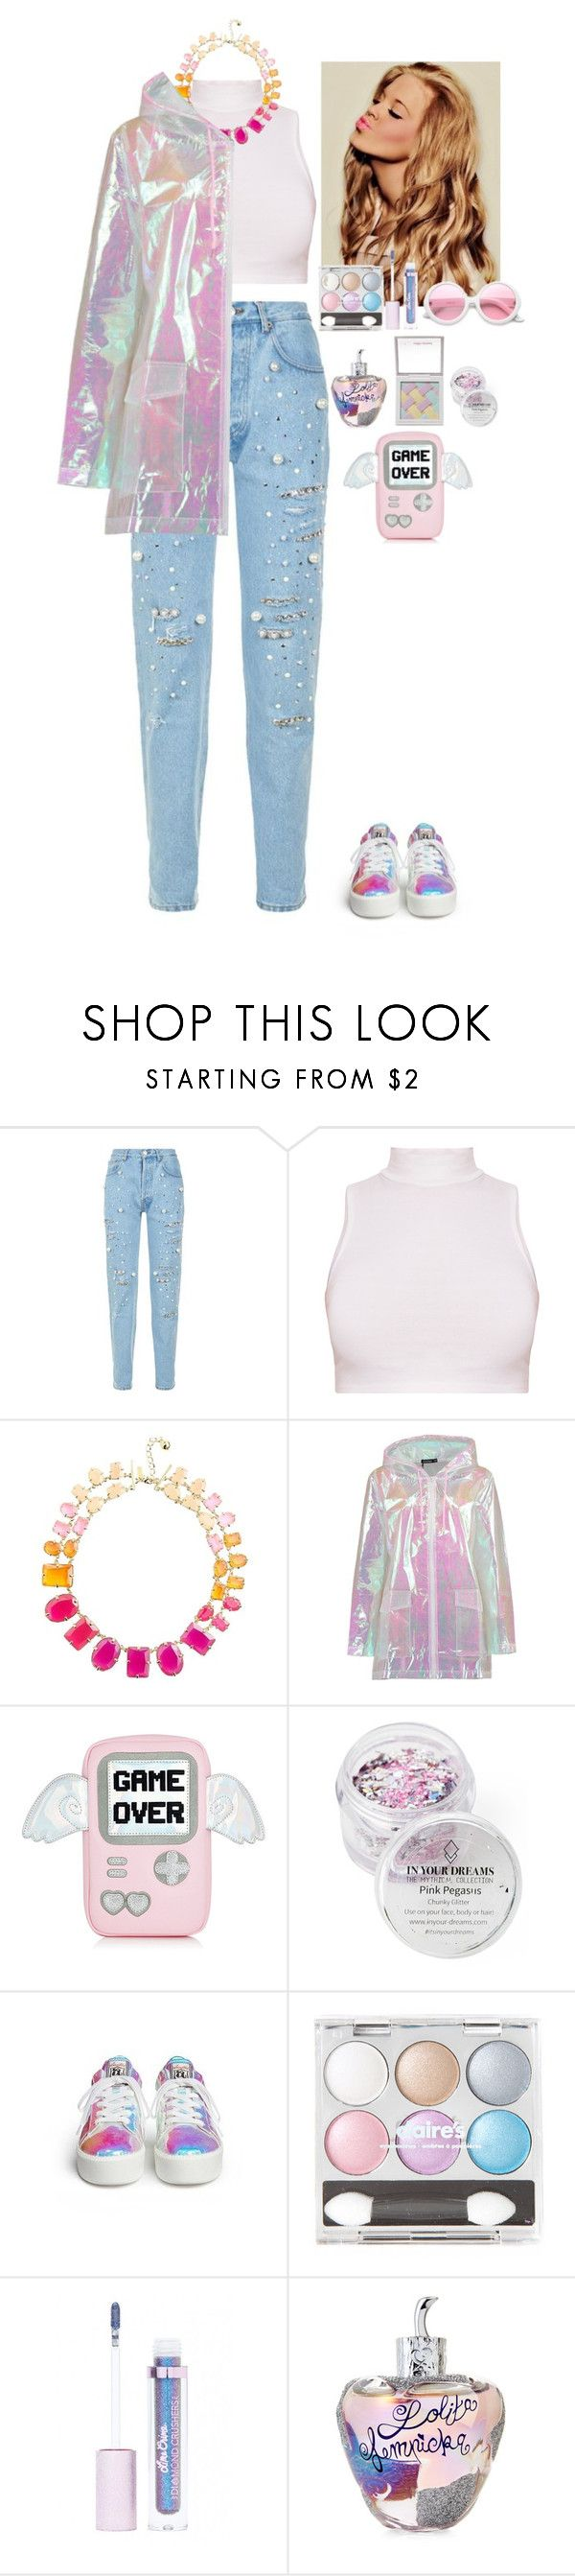 """""""Holographic"""" by eliza-redkina ❤ liked on Polyvore featuring Forte Couture, Kate Spade, Boohoo, In Your Dreams, Hard Candy, Lime Crime, Lolita Lempicka and ZeroUV"""